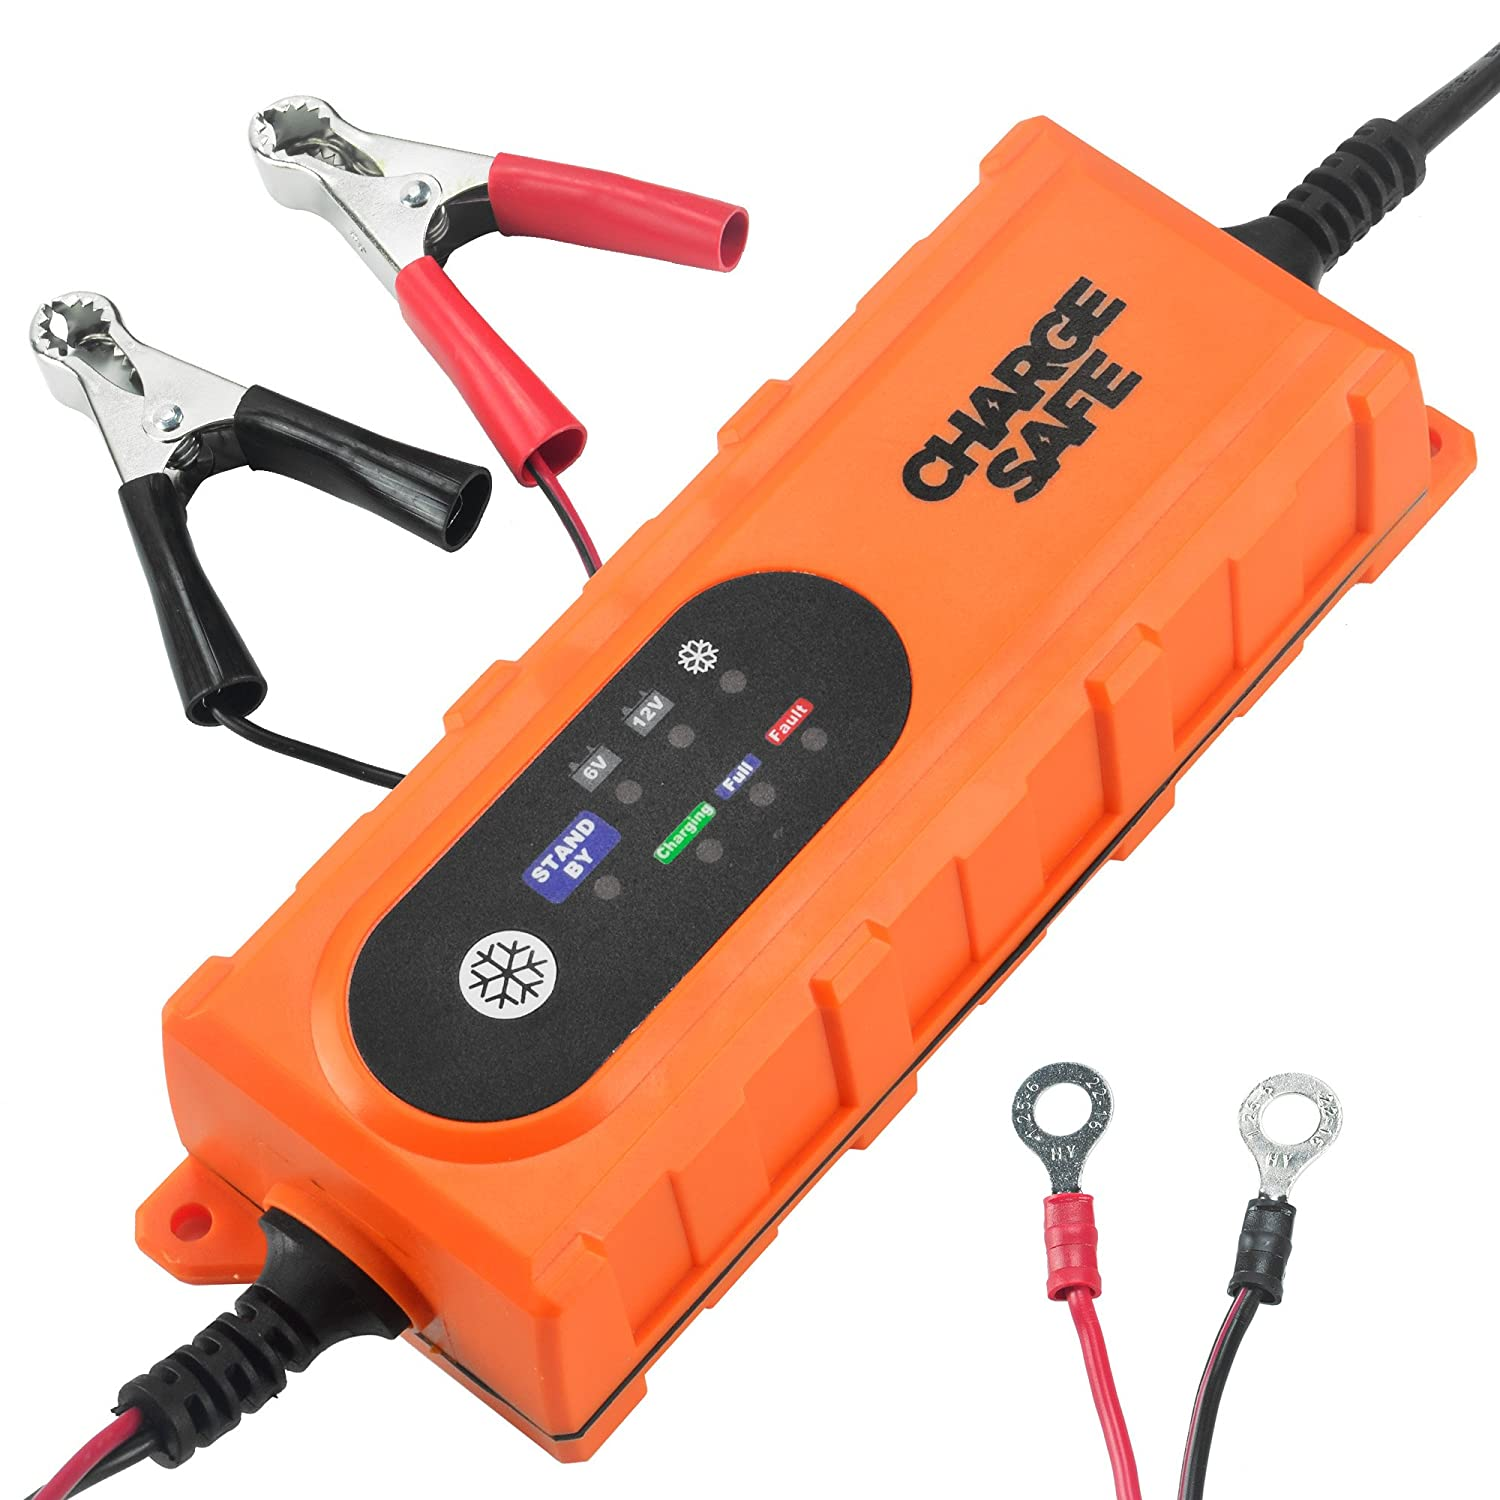 Portable Car Battery Charger- 12v For Car 6v For Motorcycle and Powersports - Best Automatic Auto Battery Trickle Smart Charger For Lead Acid Batteries- Battery Charge Maintainer With Clips and O-rings Allybrown Products B6001#